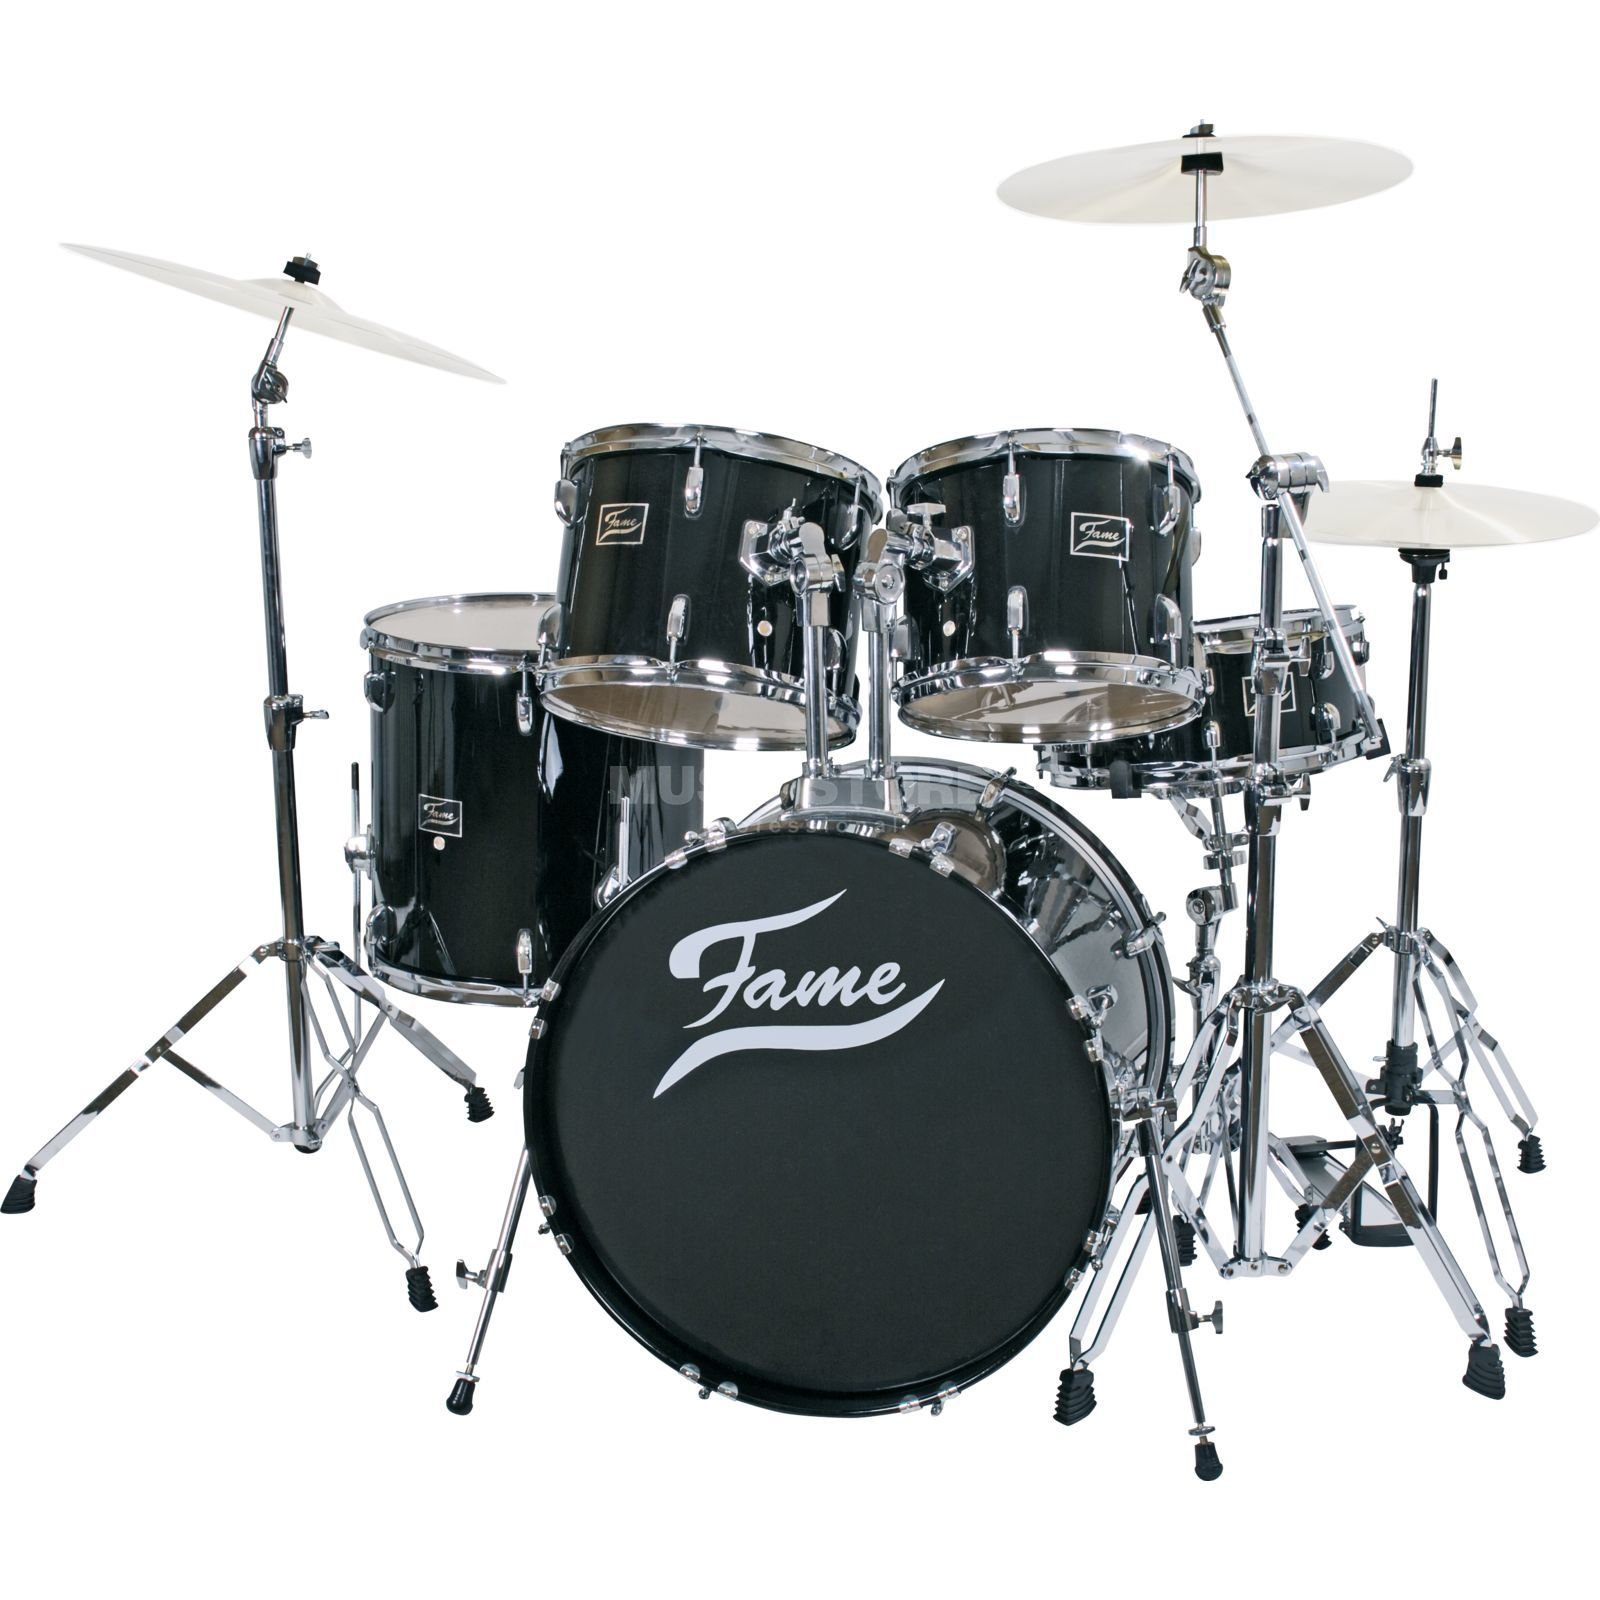 Fame Maple Standard Set 5221, #Black Изображение товара